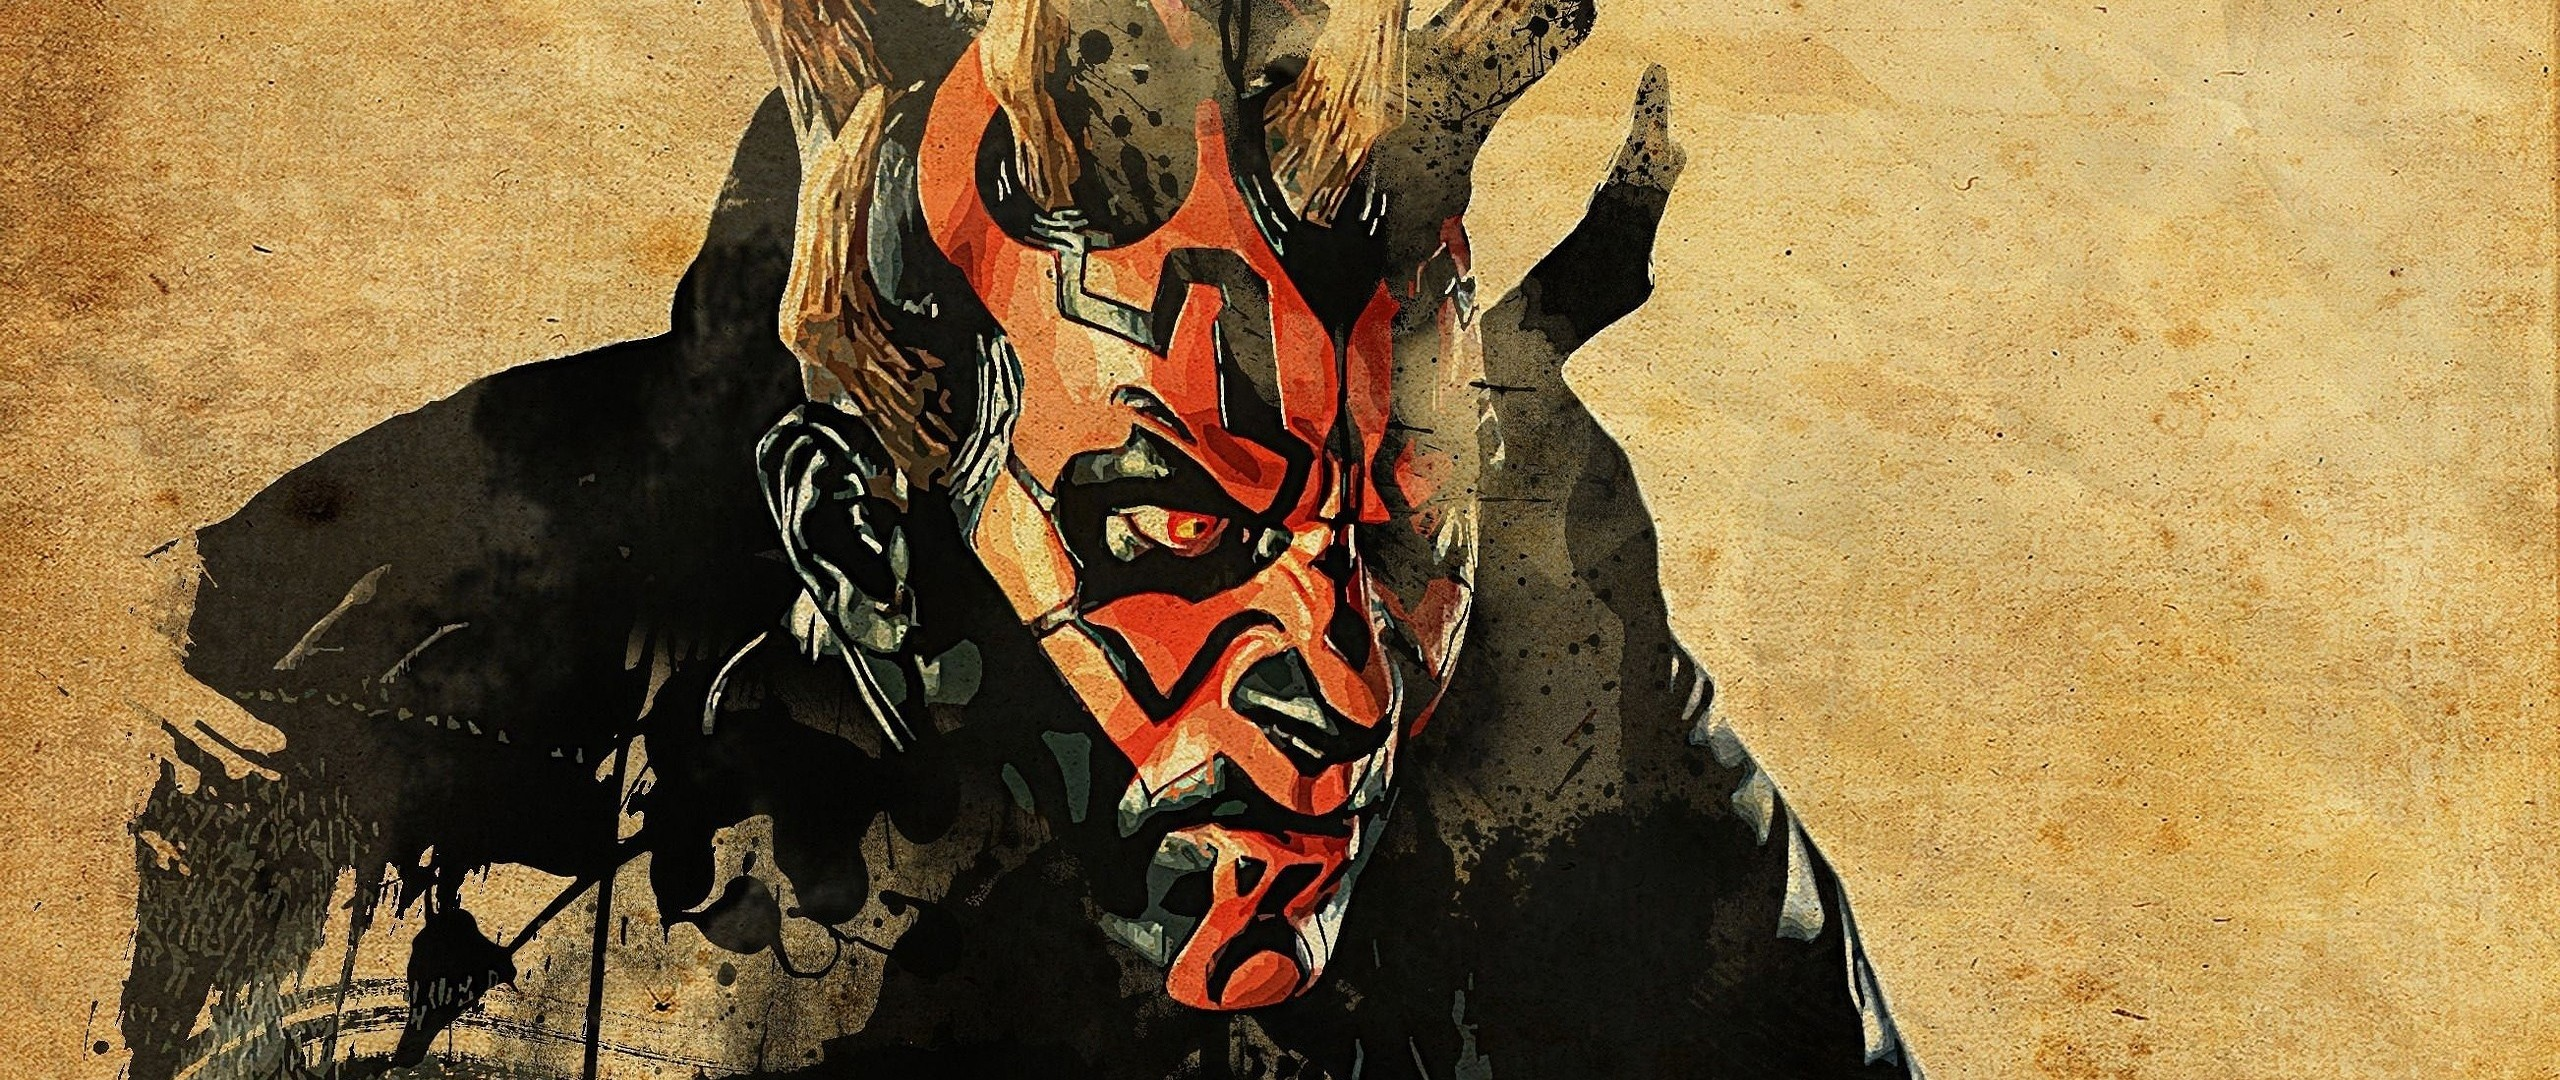 2560x1080  Wallpaper star wars, darth maul, art